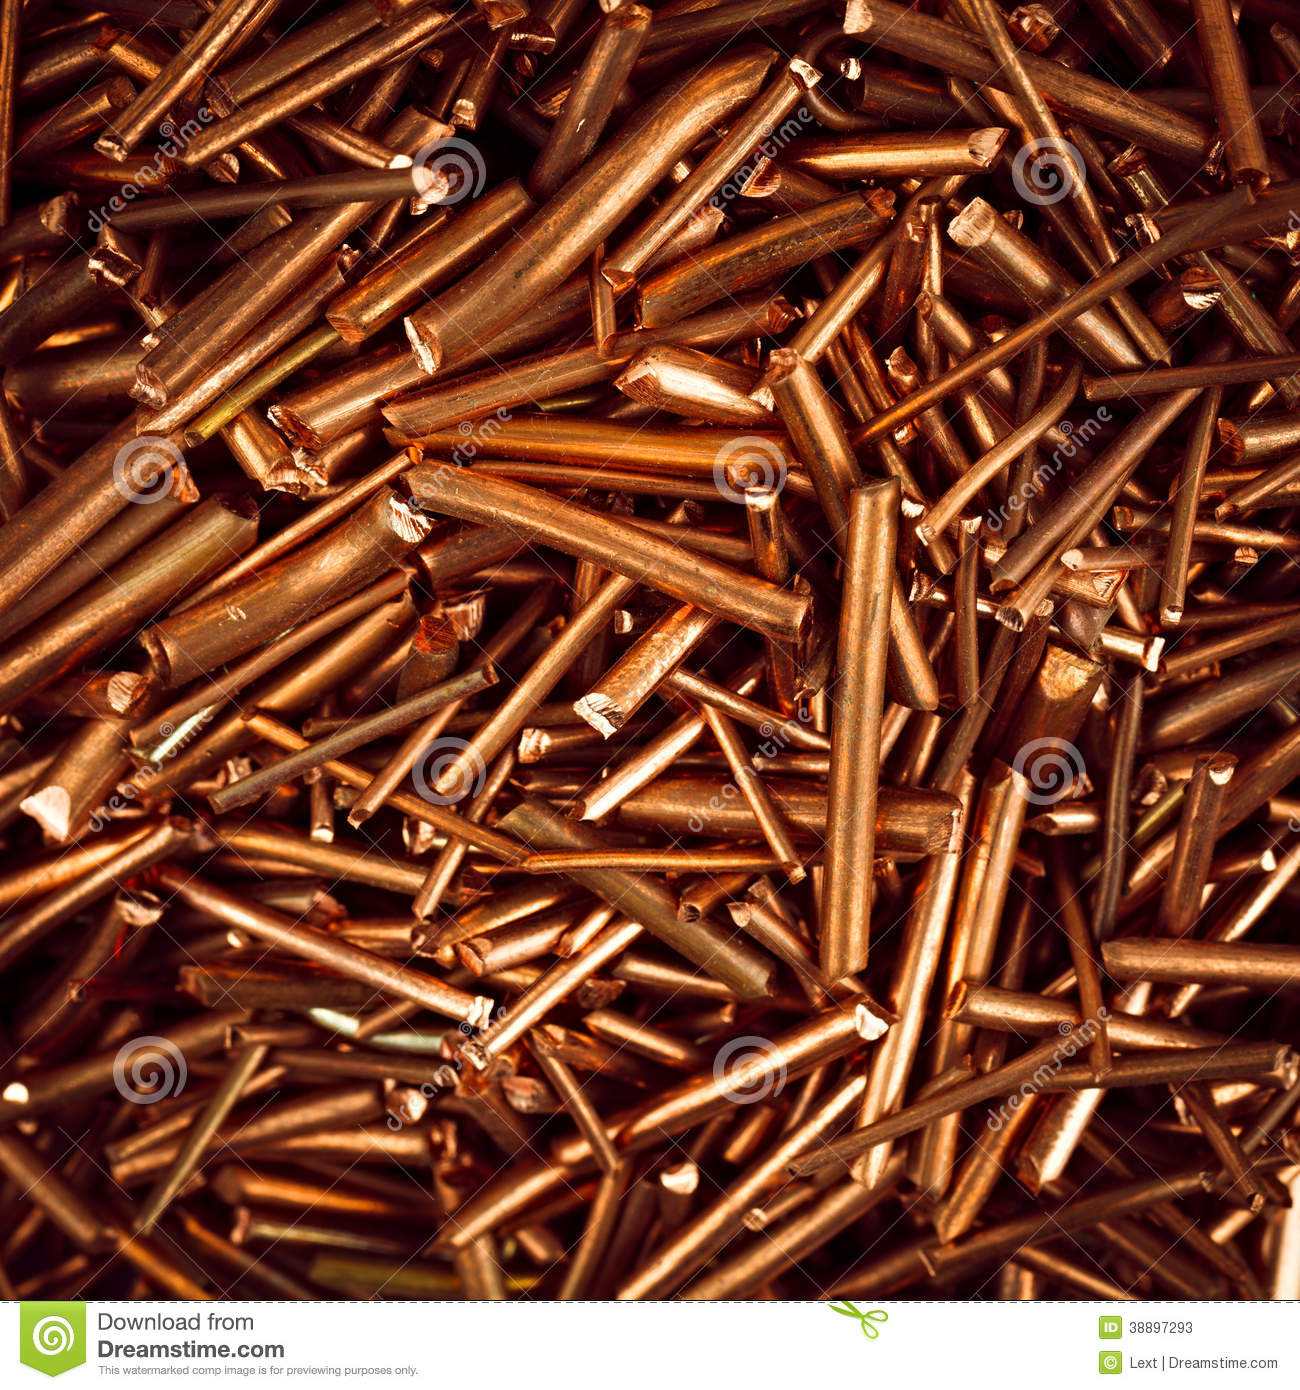 Copper wire stock image. Image of recycling, waste, electricity ...